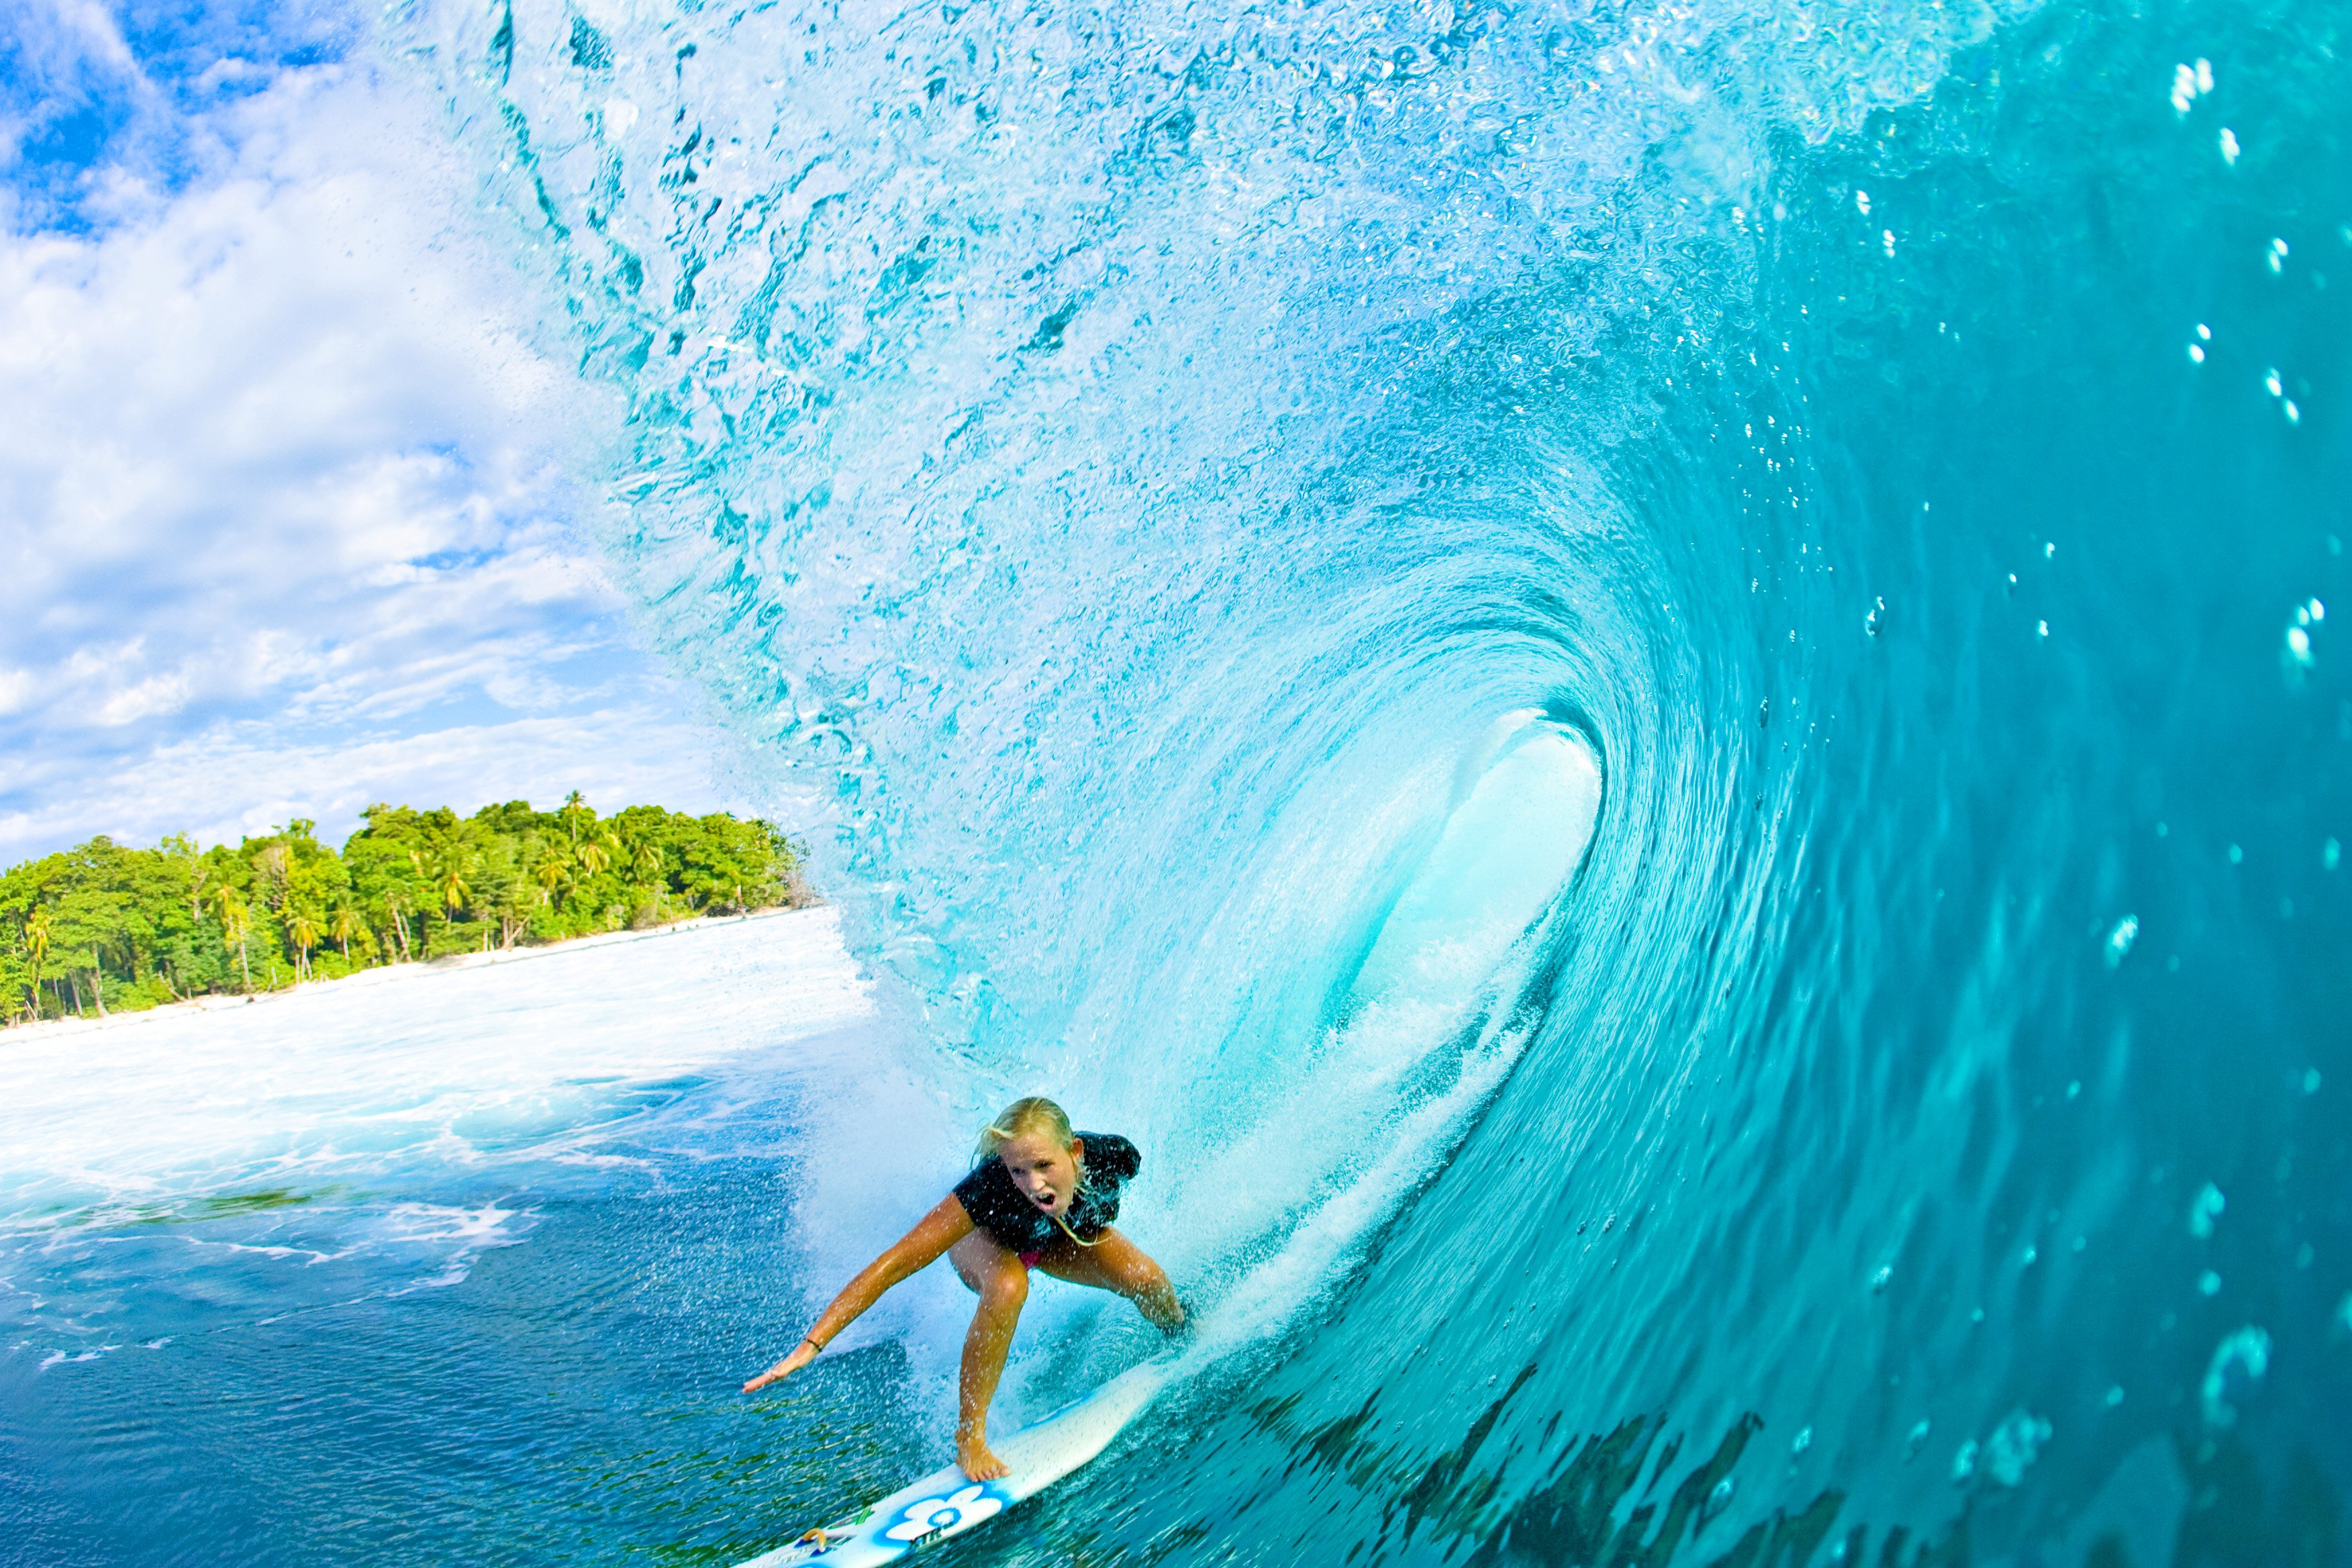 surfing surf ocean sea waves extreme surfer (29)_JPG